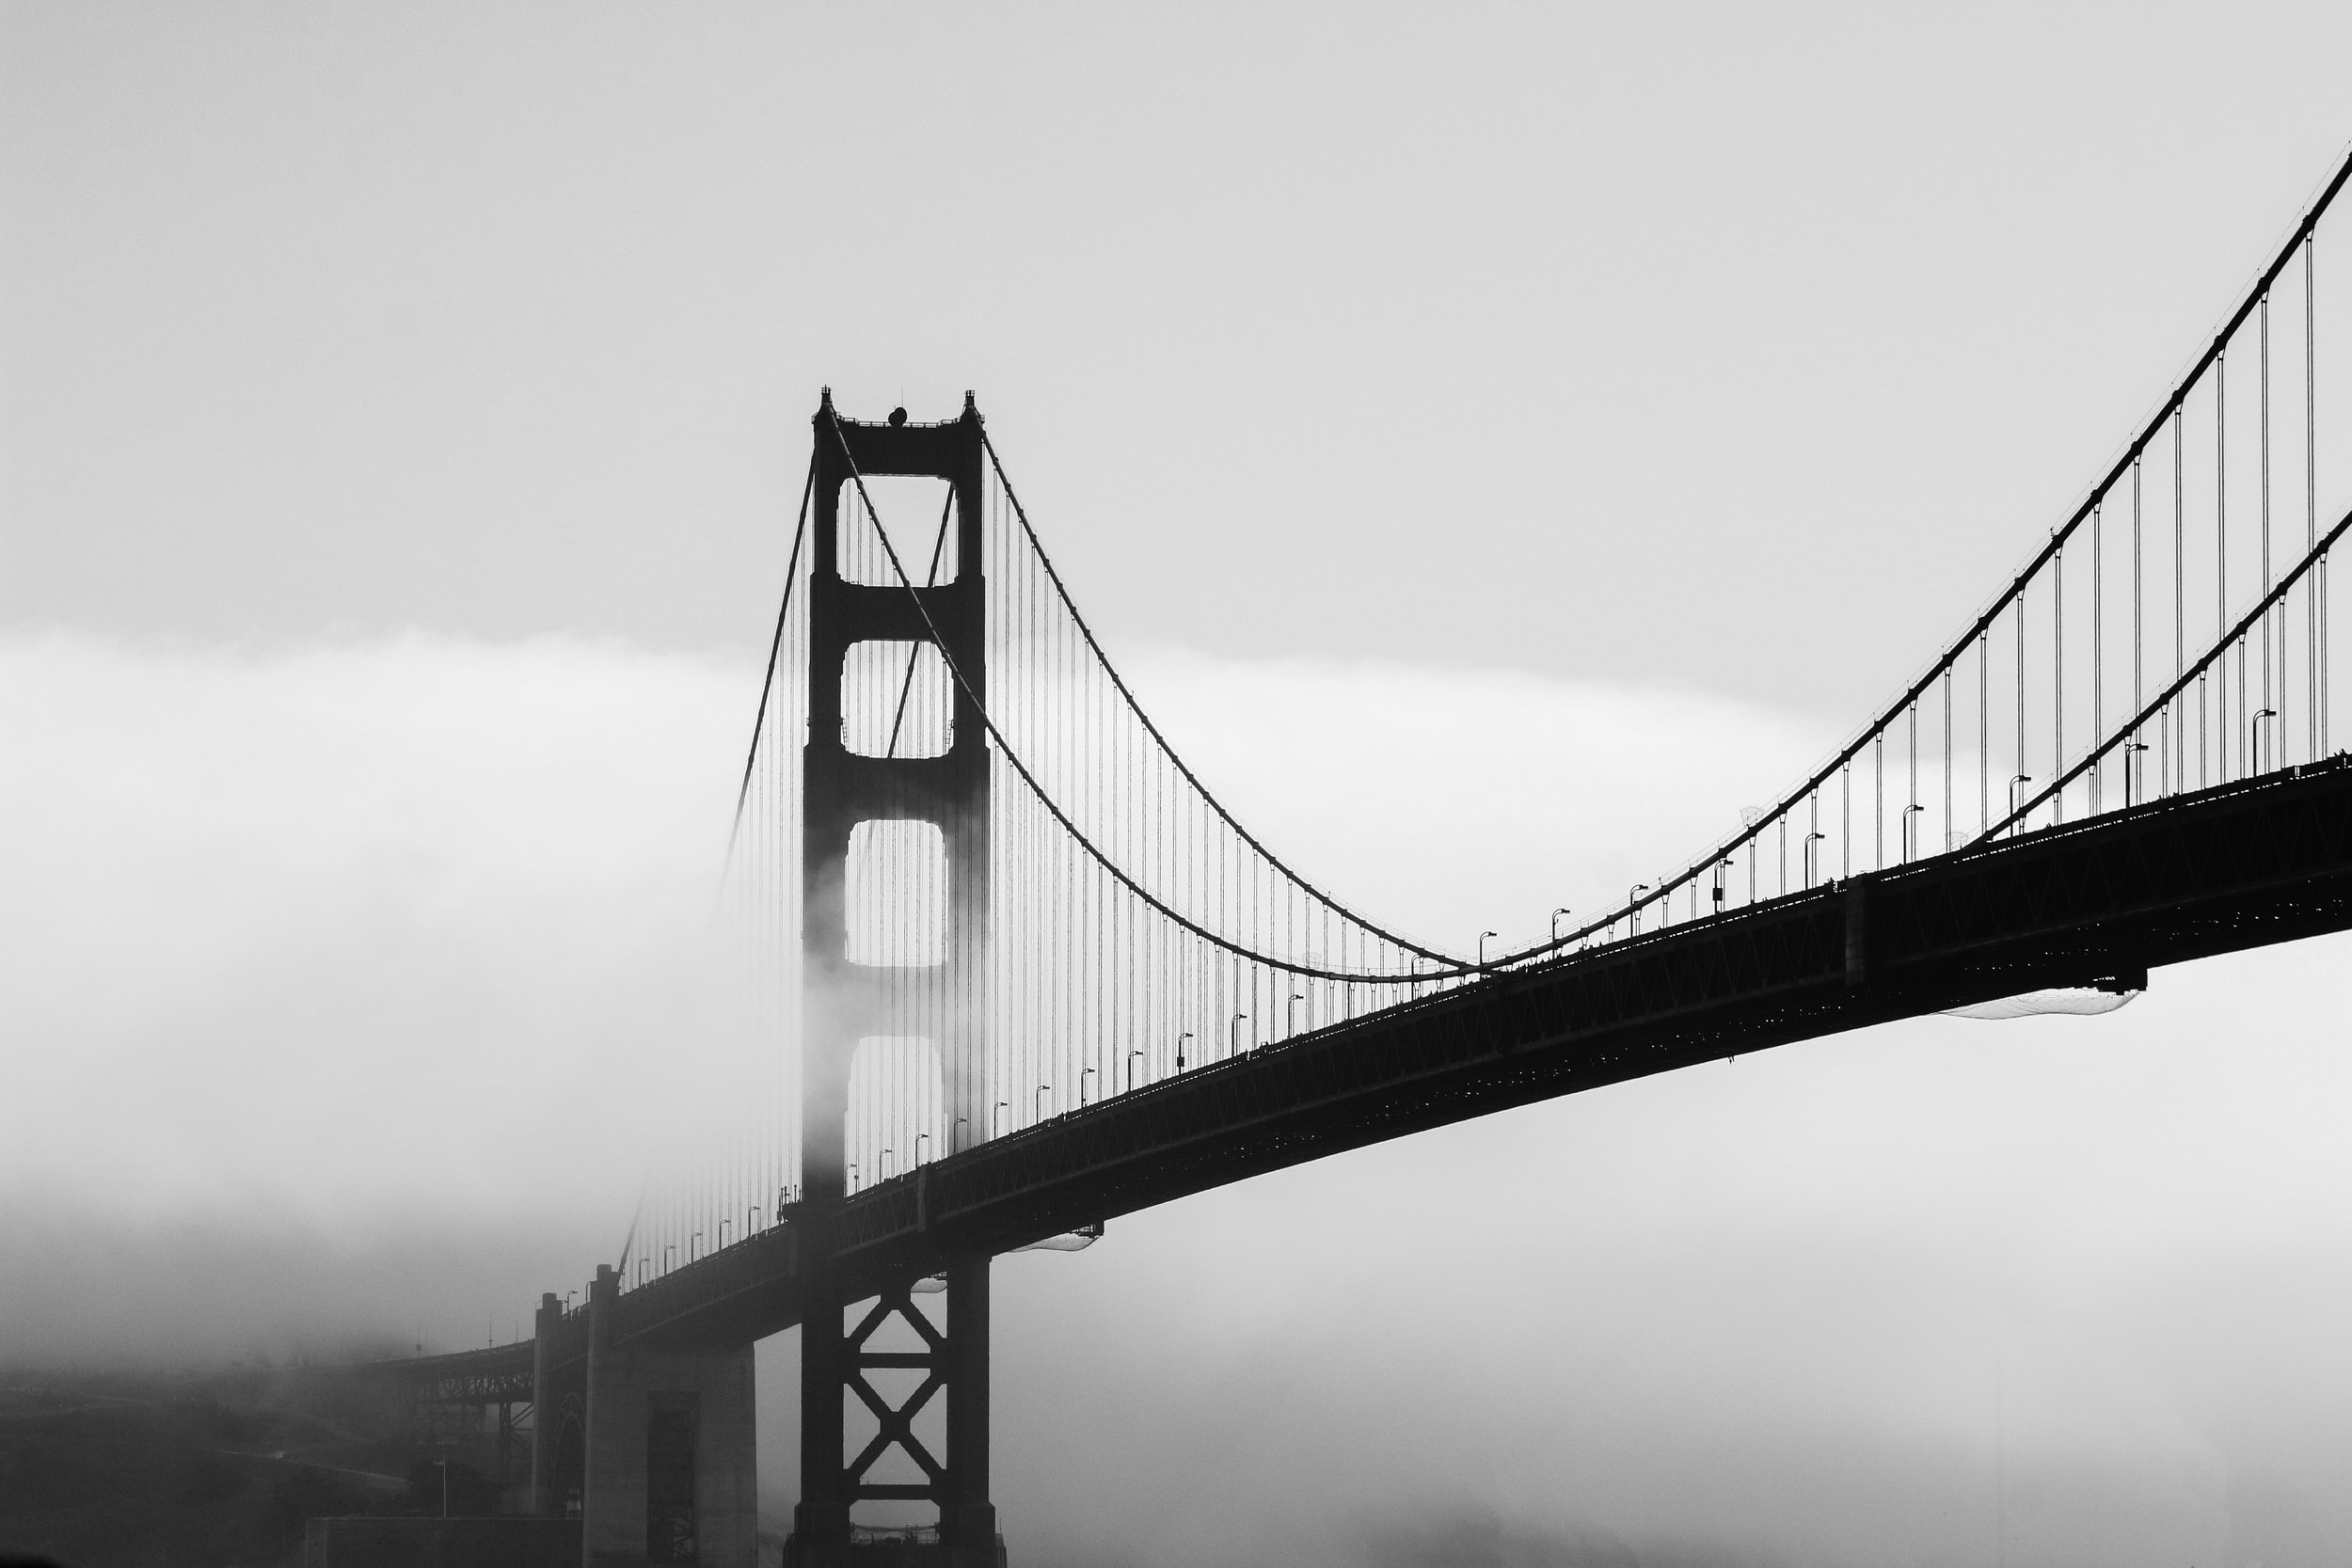 silhouette of bridge covered by mist